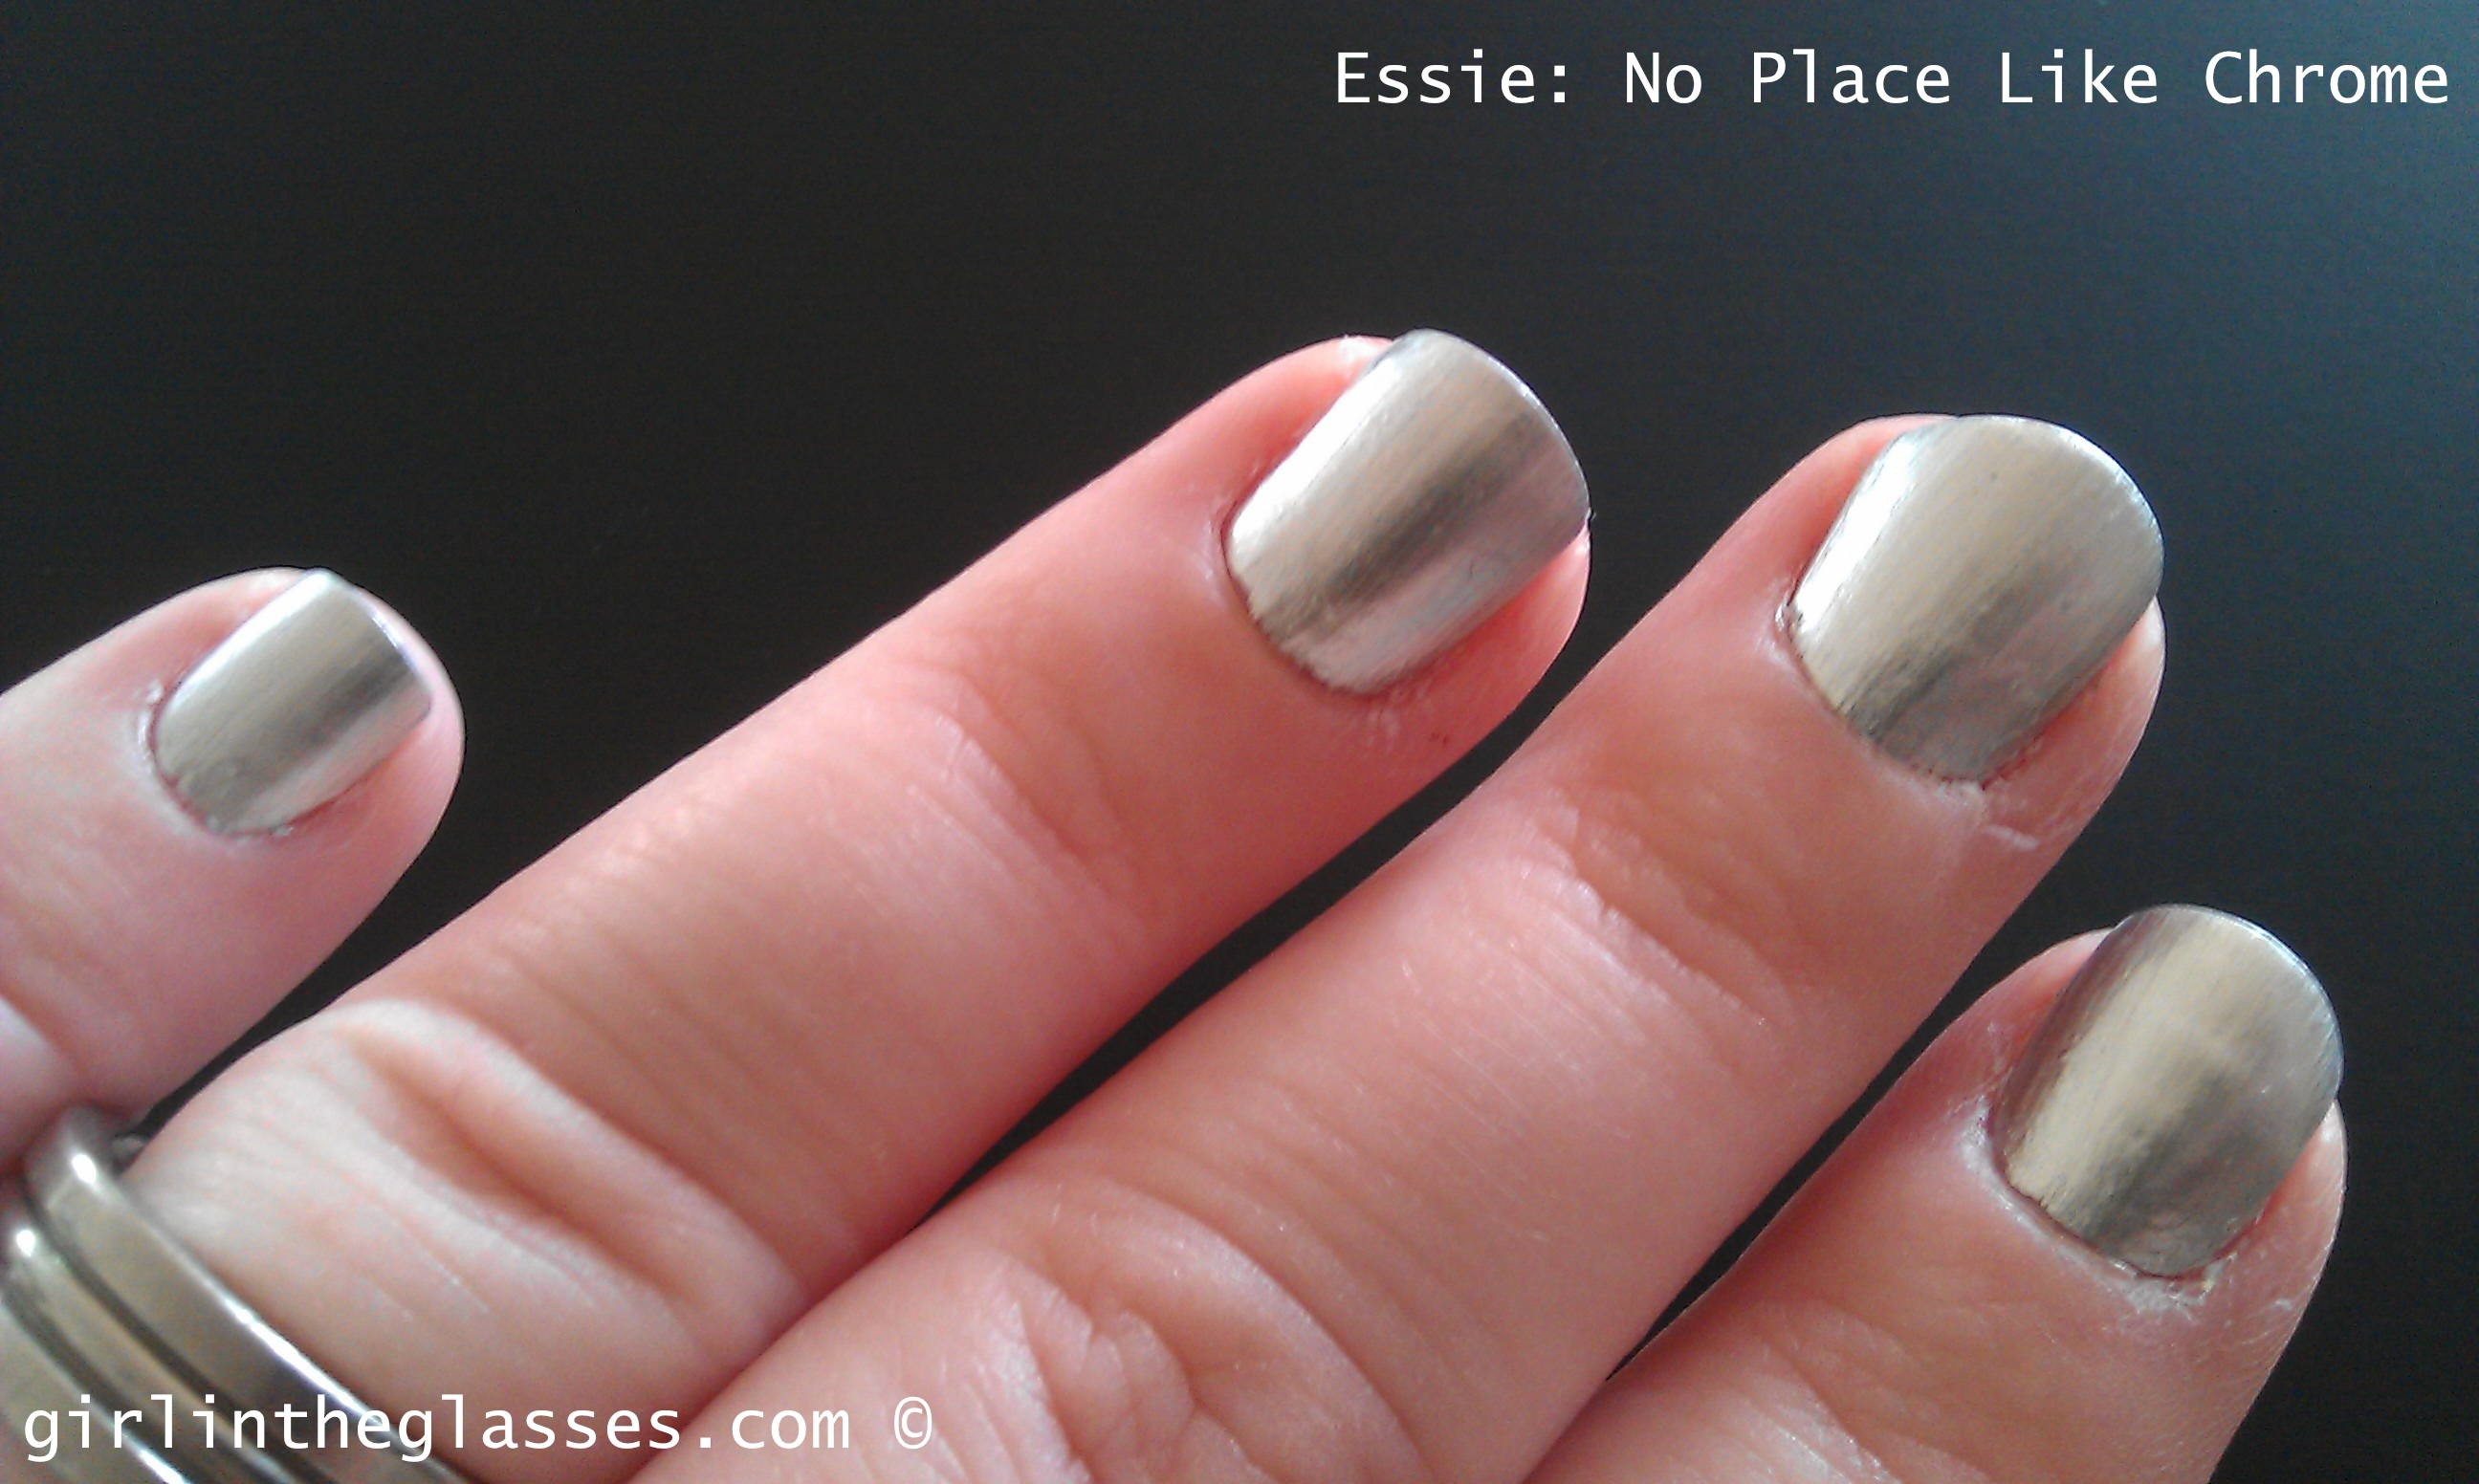 where to find essie in germany | girlintheglasses